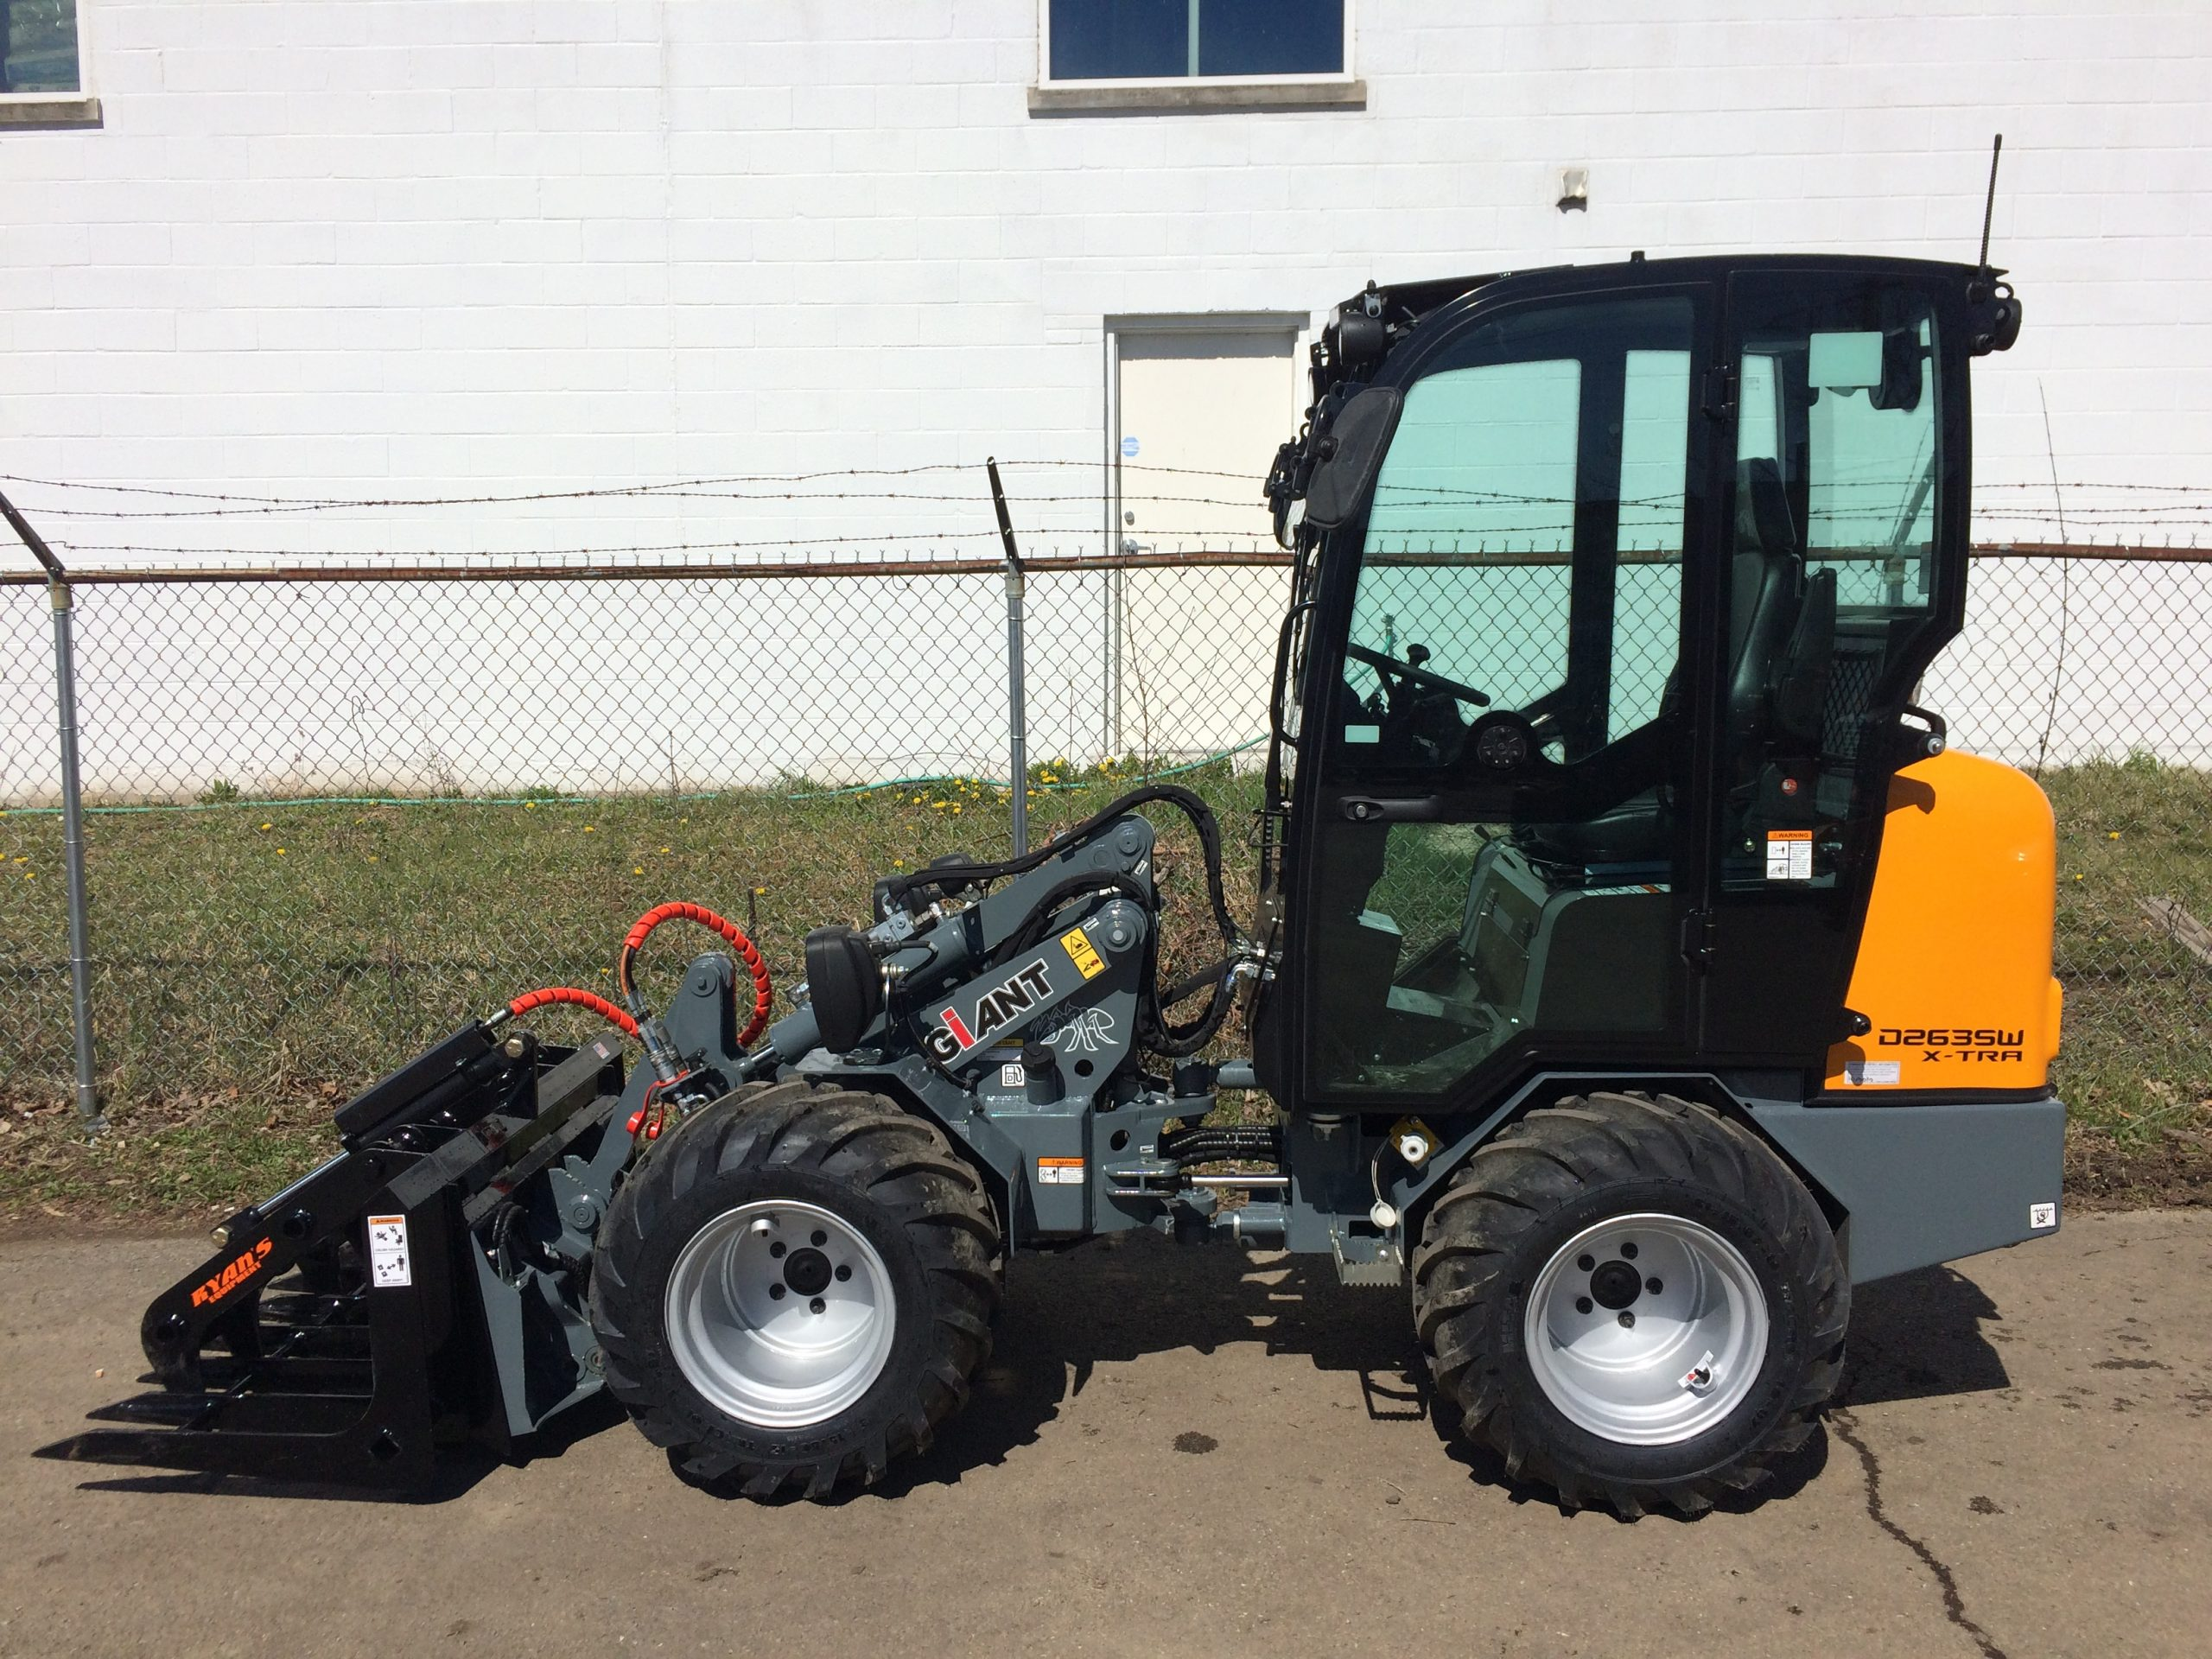 Giant D263SW X-TRA Compact Wheel Loader